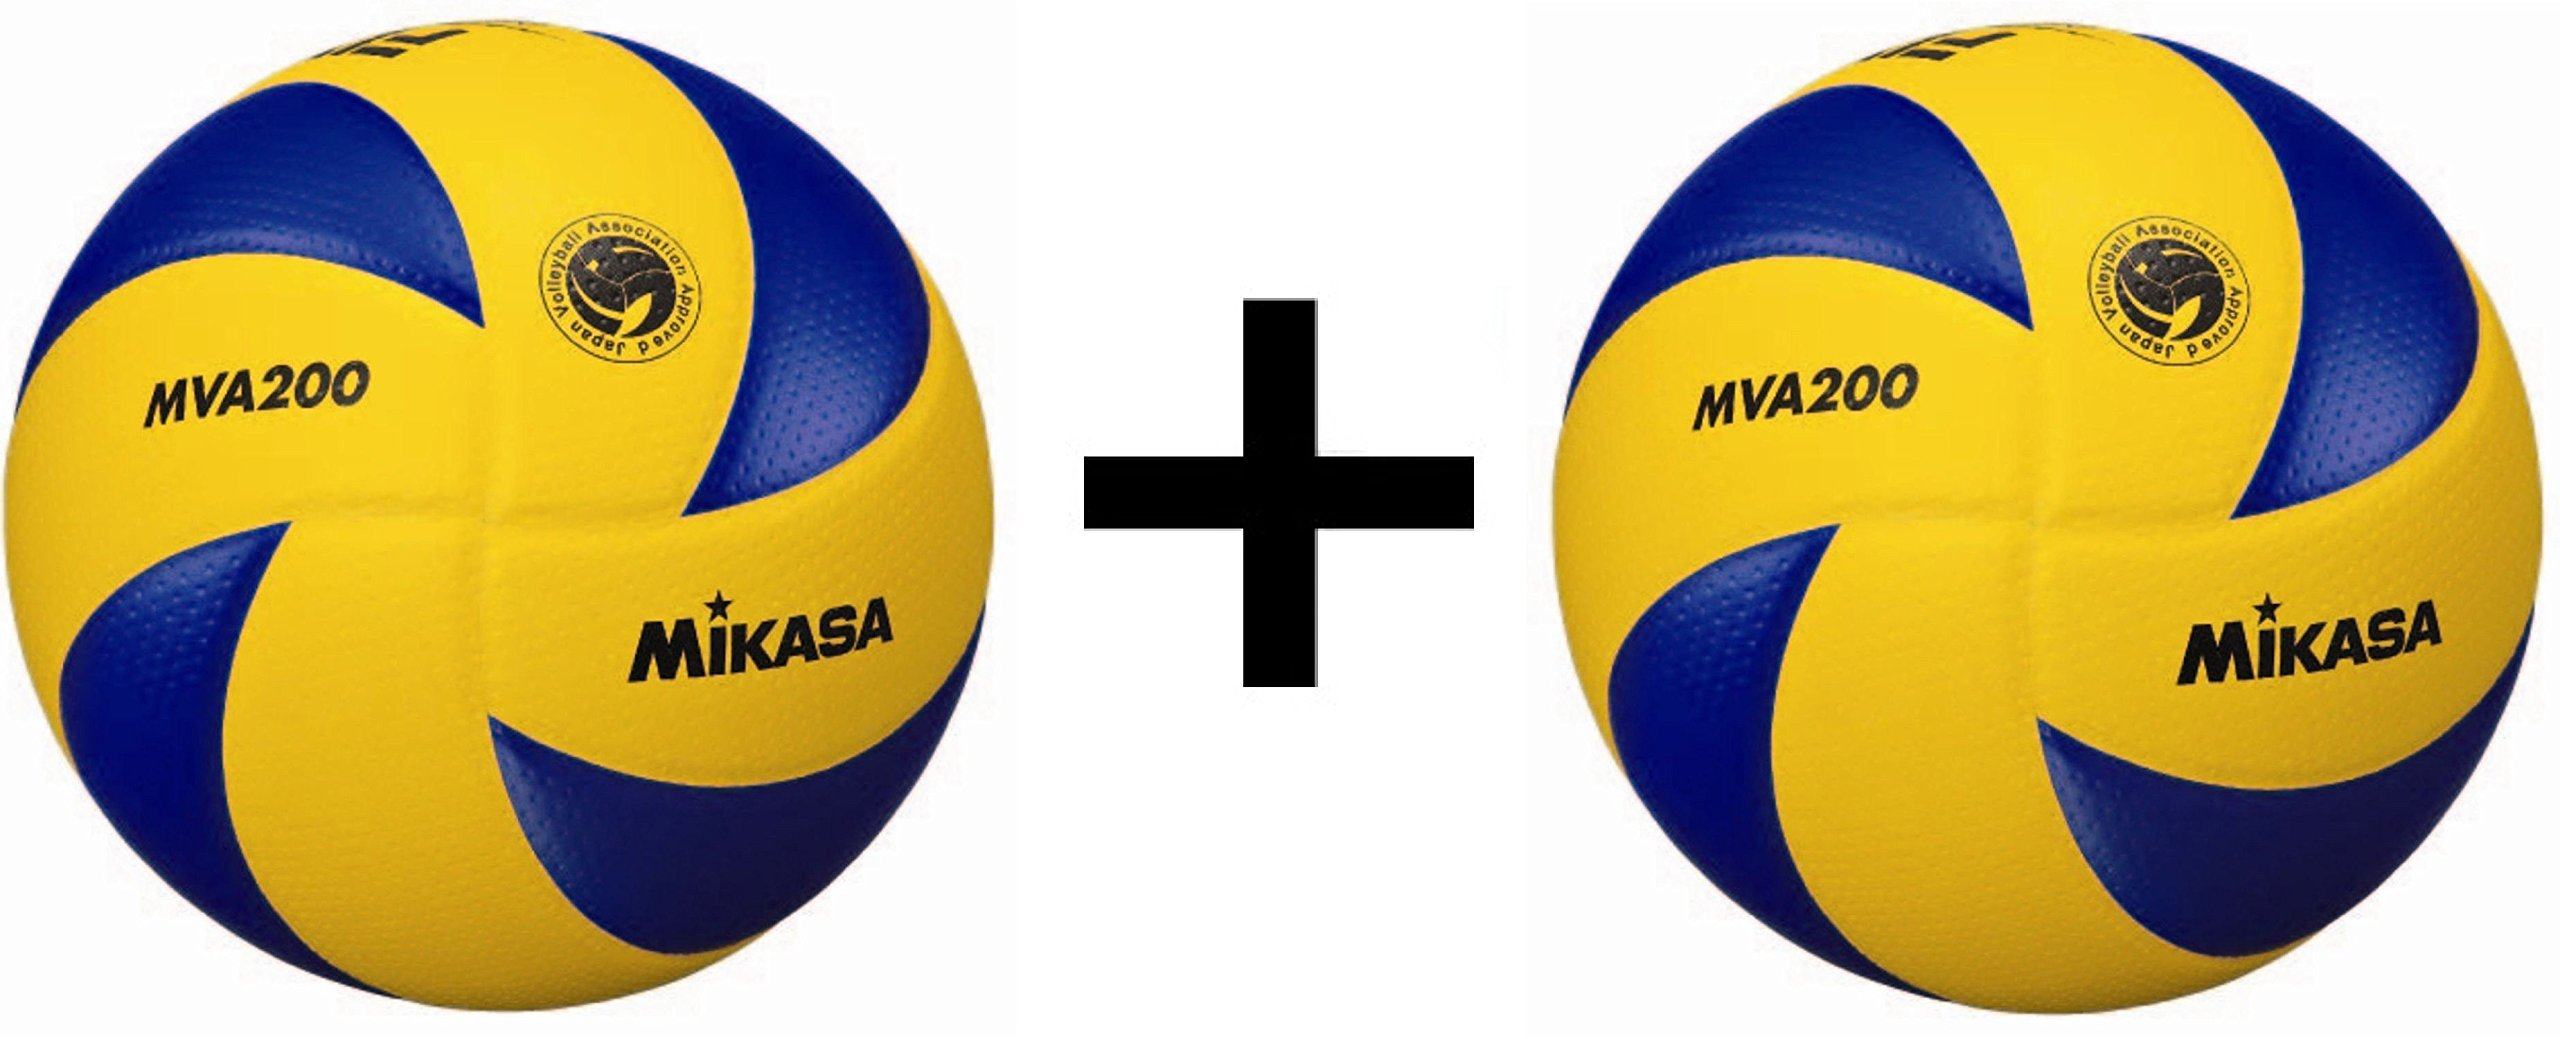 Mikasa FIVB Volleyball Official 2016 Olympic Game Ball Dimpled Surface (2-Pack)